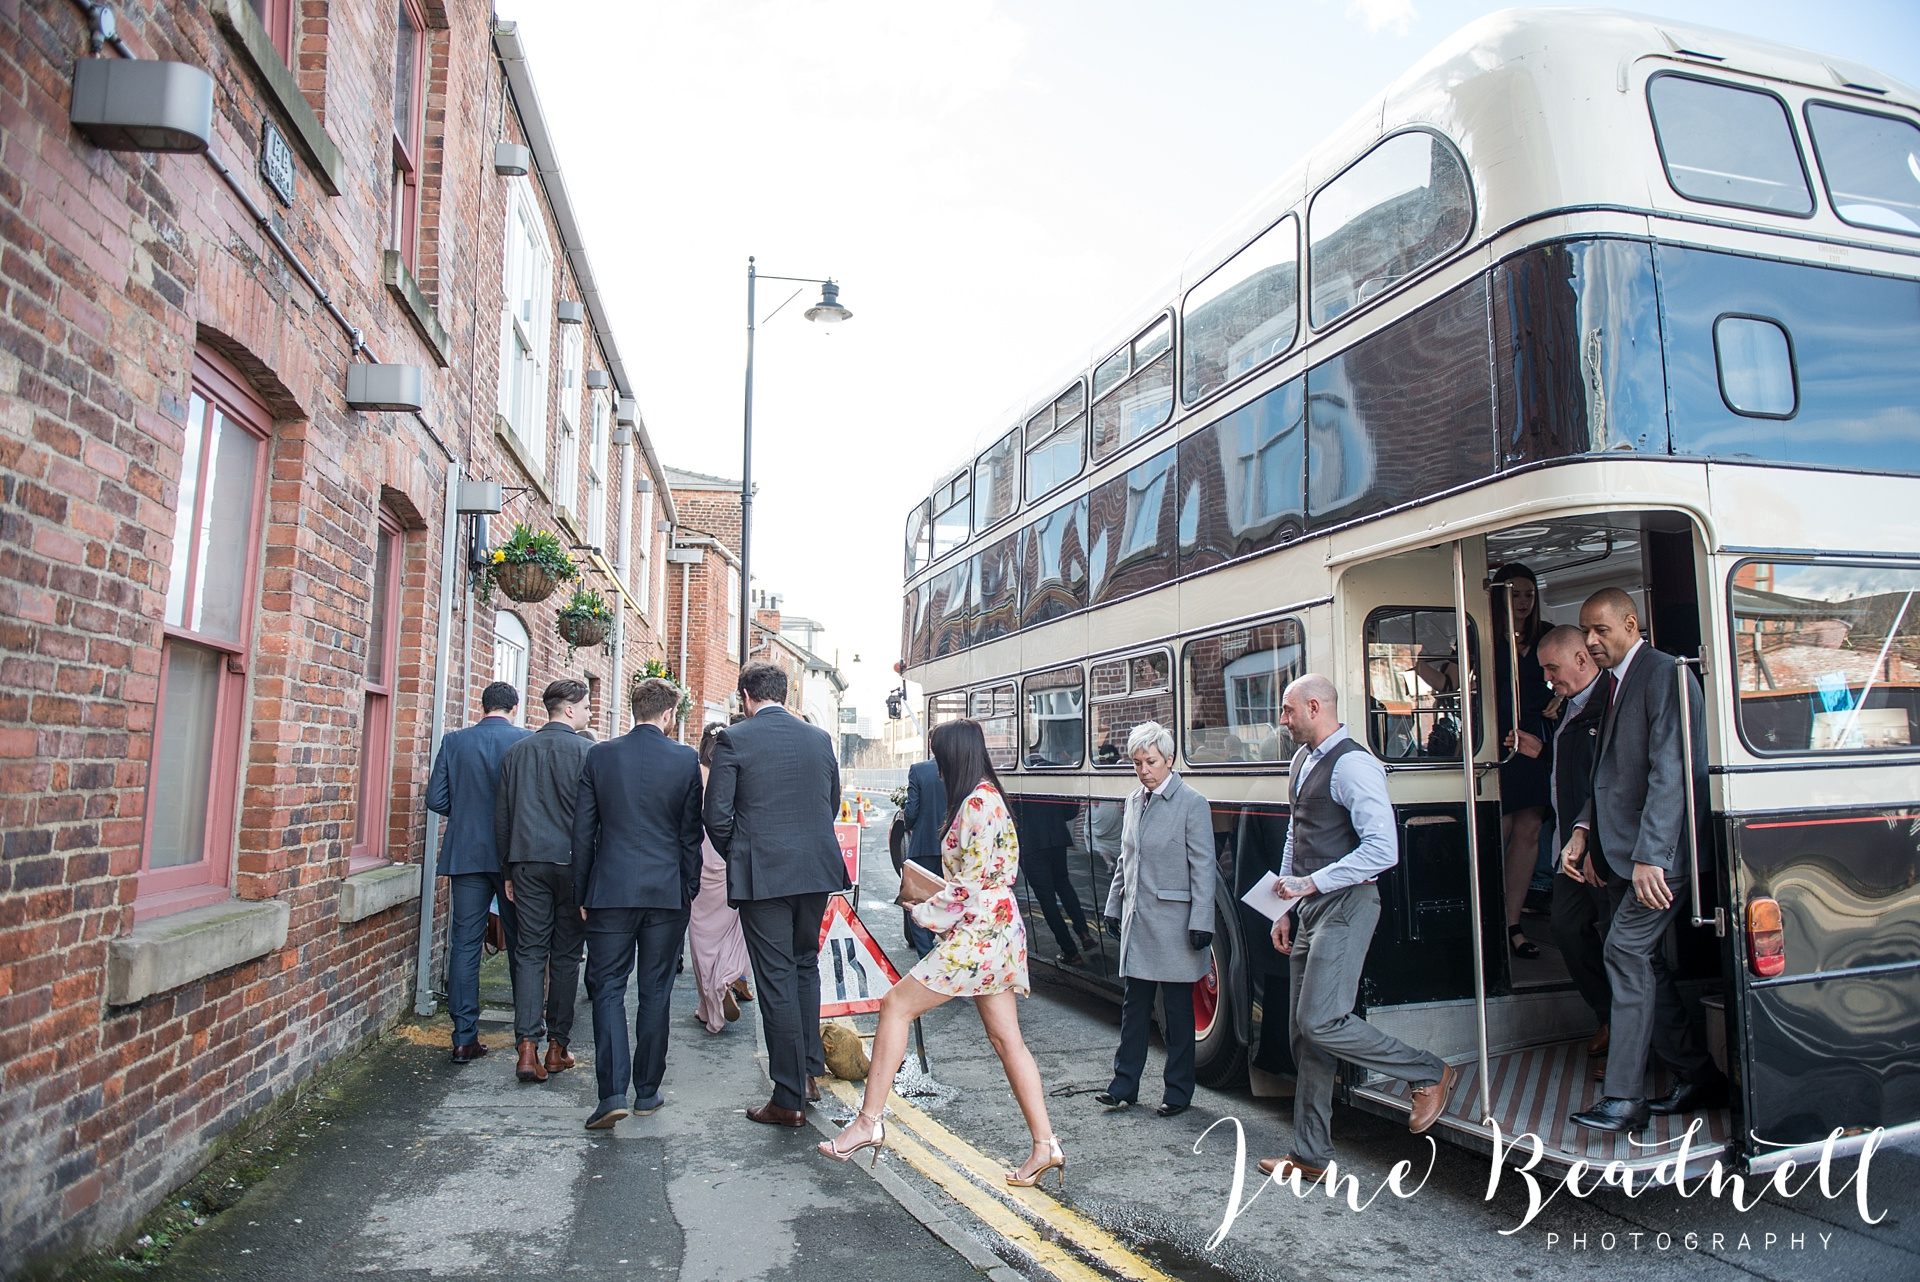 Wedding photography Cross Keys Leeds Wedding Jane Beadnell Photography_0063